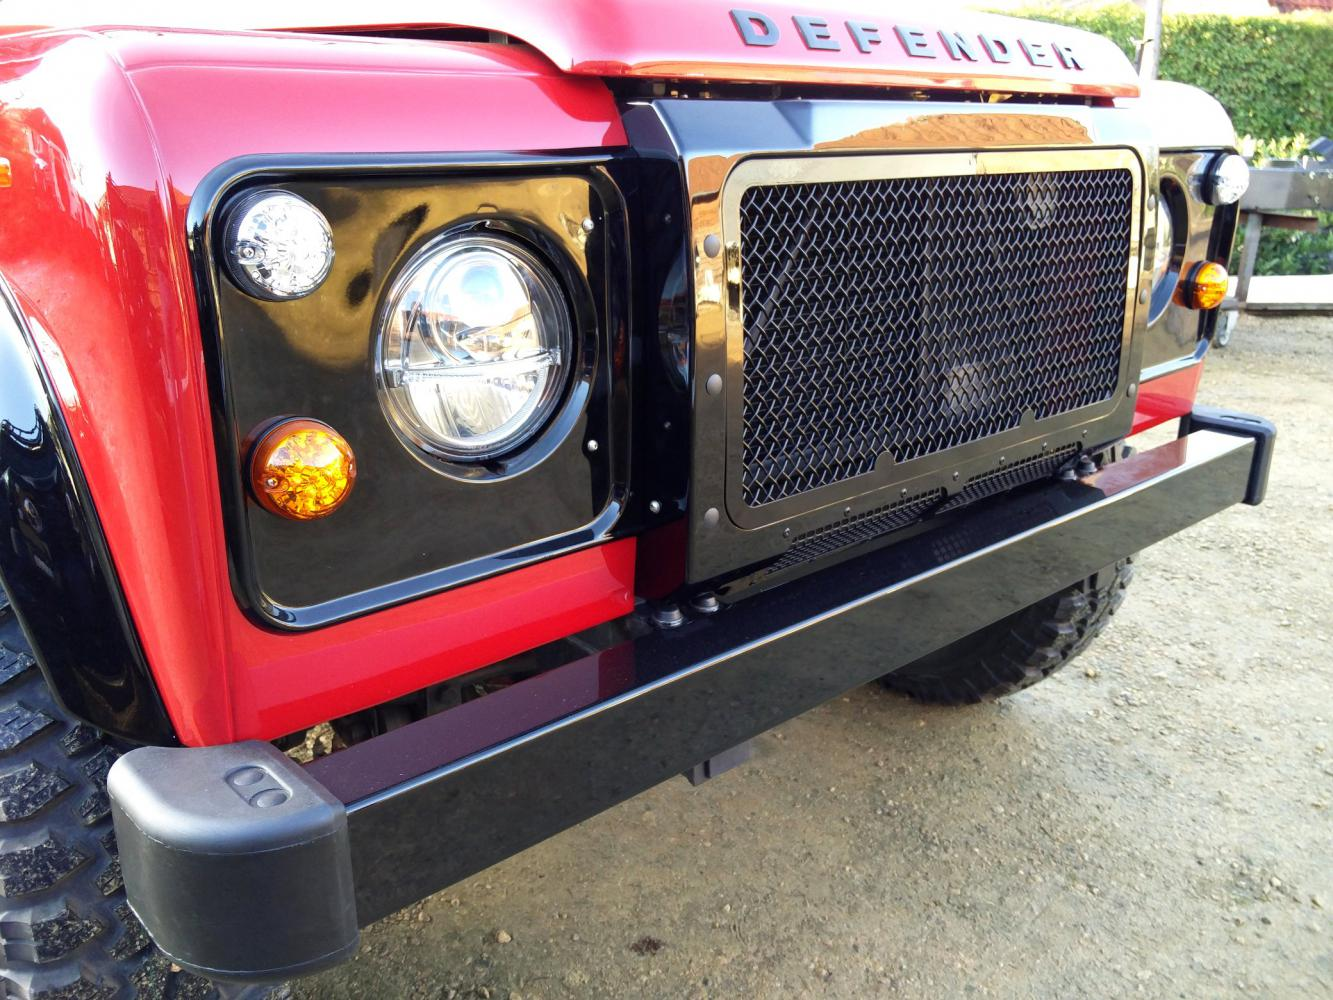 Click image for larger version  Name:1992 LR LHD Defender 90 Red 200 Tdi A ready grill close with NOLDEN headlight.jpg Views:84 Size:220.7 KB ID:336809